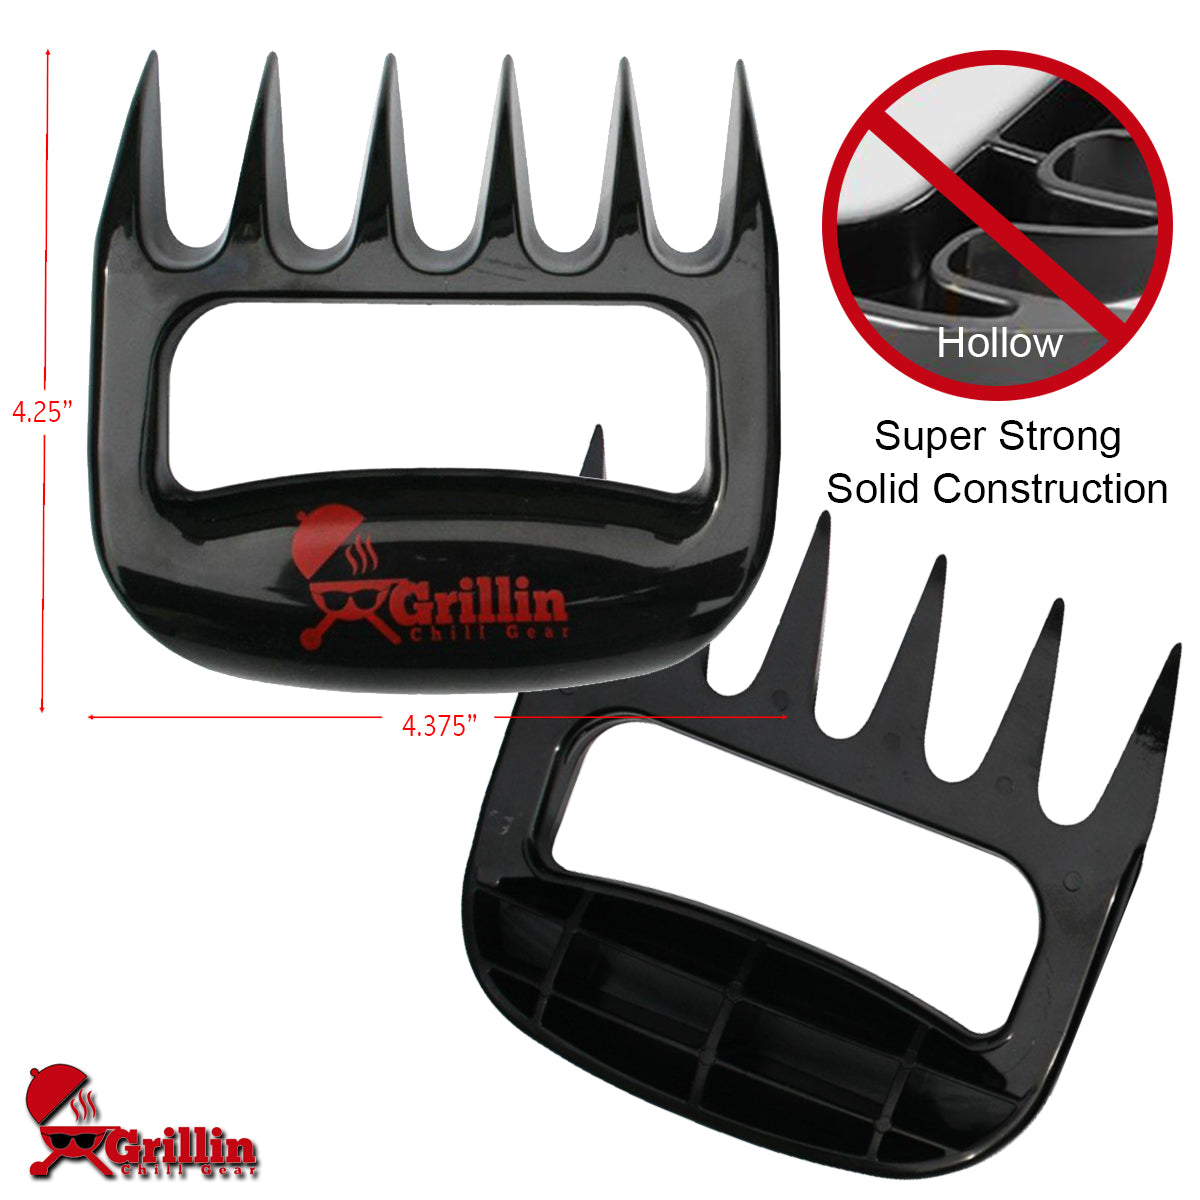 Grillin Chill Gear Meat Claws - Best Bear Claw Pulled Pork Meat